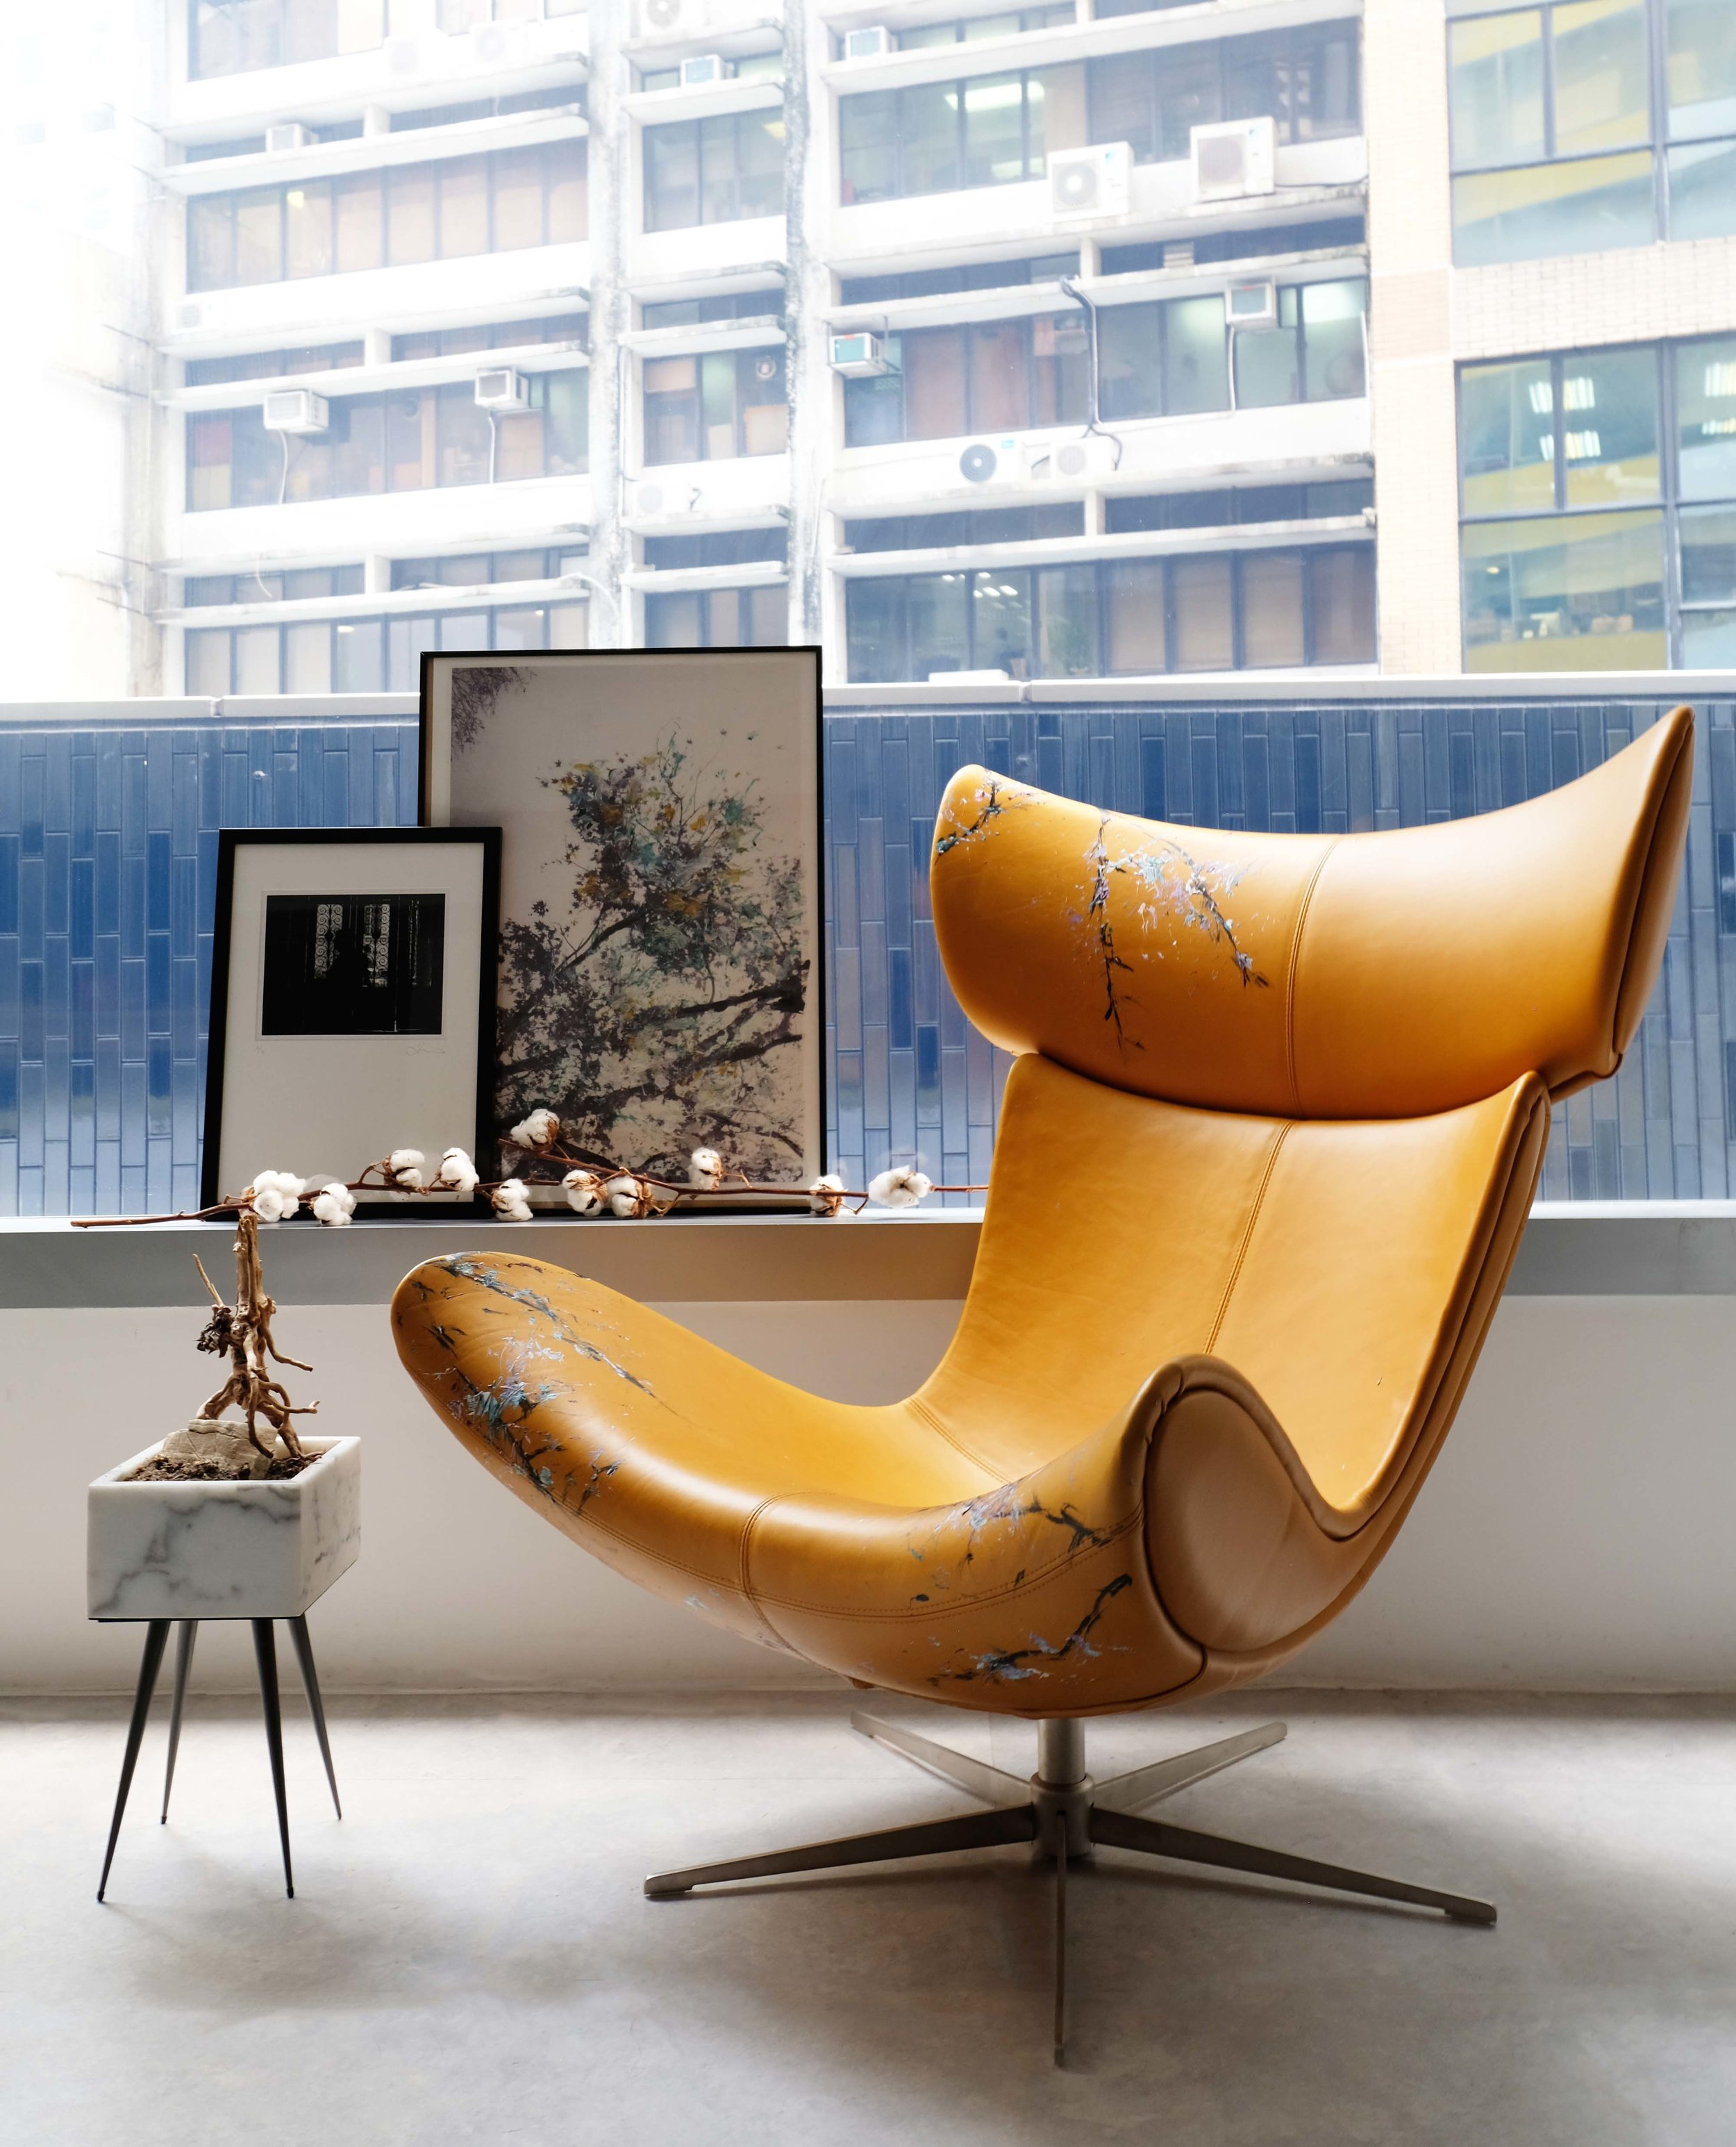 Cobo house x bo concept_chair (front)_low res.jpg